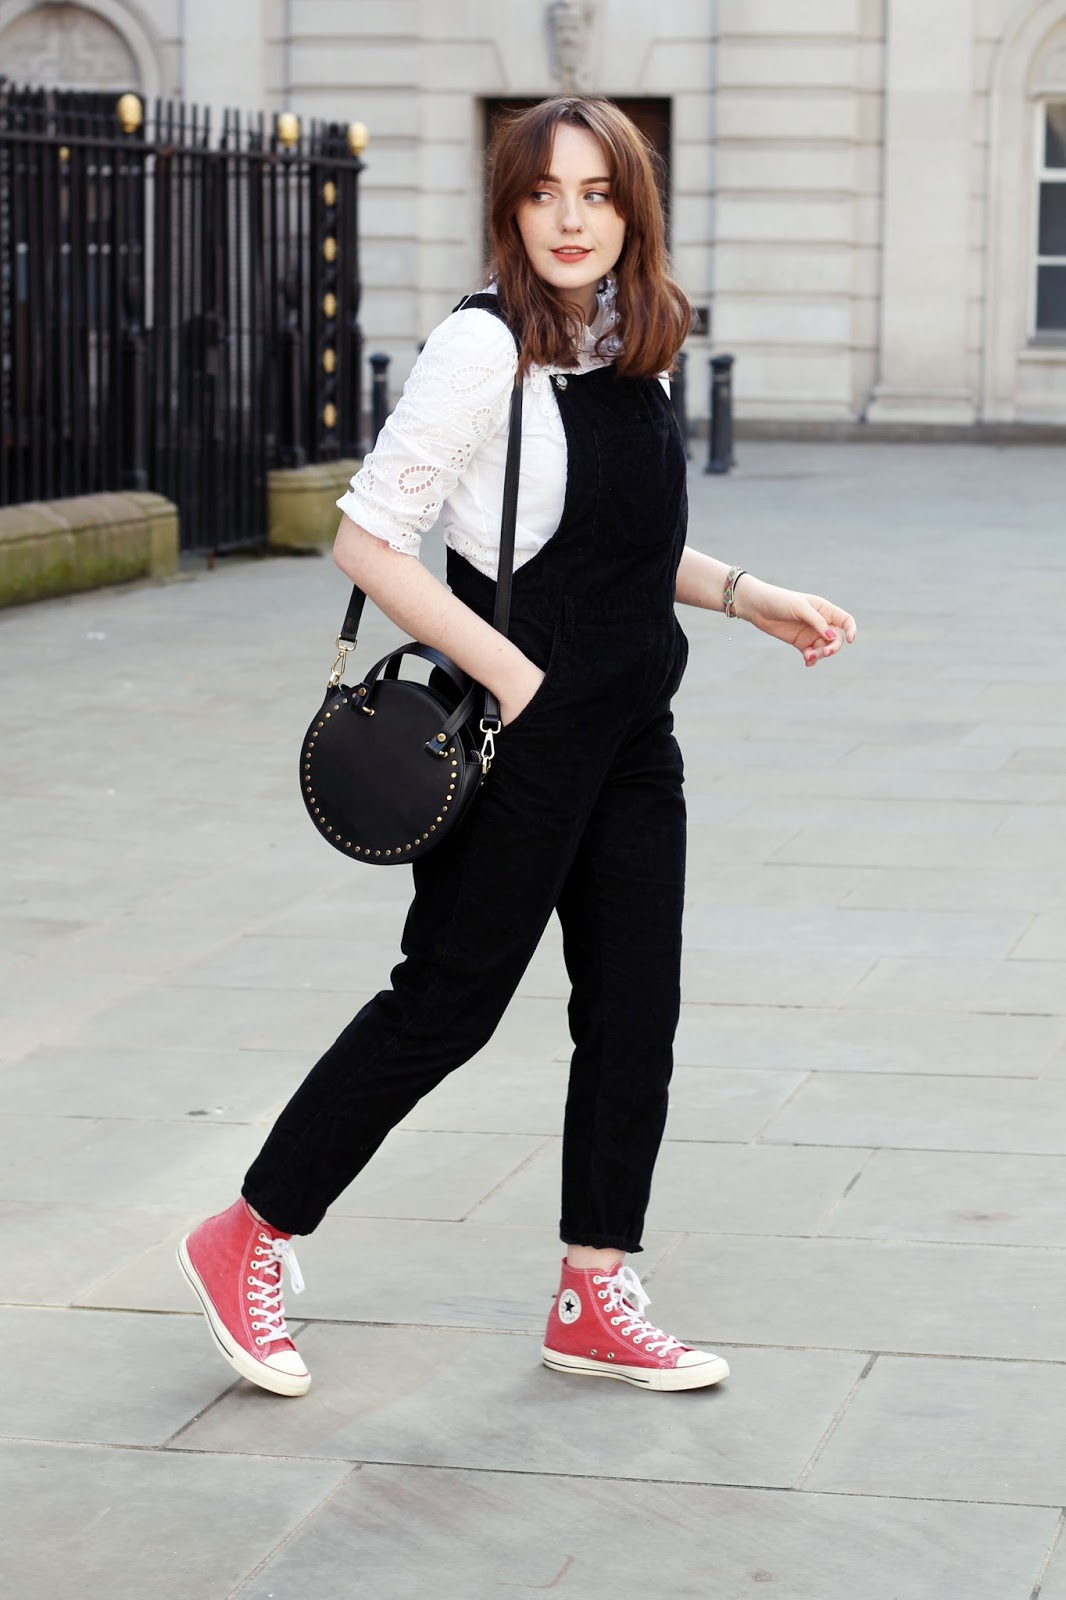 Liverpool style blogger wearing white broderie anglaise blouse under topshop black corduroy dungarees, black circle bag and washed red hightop converse